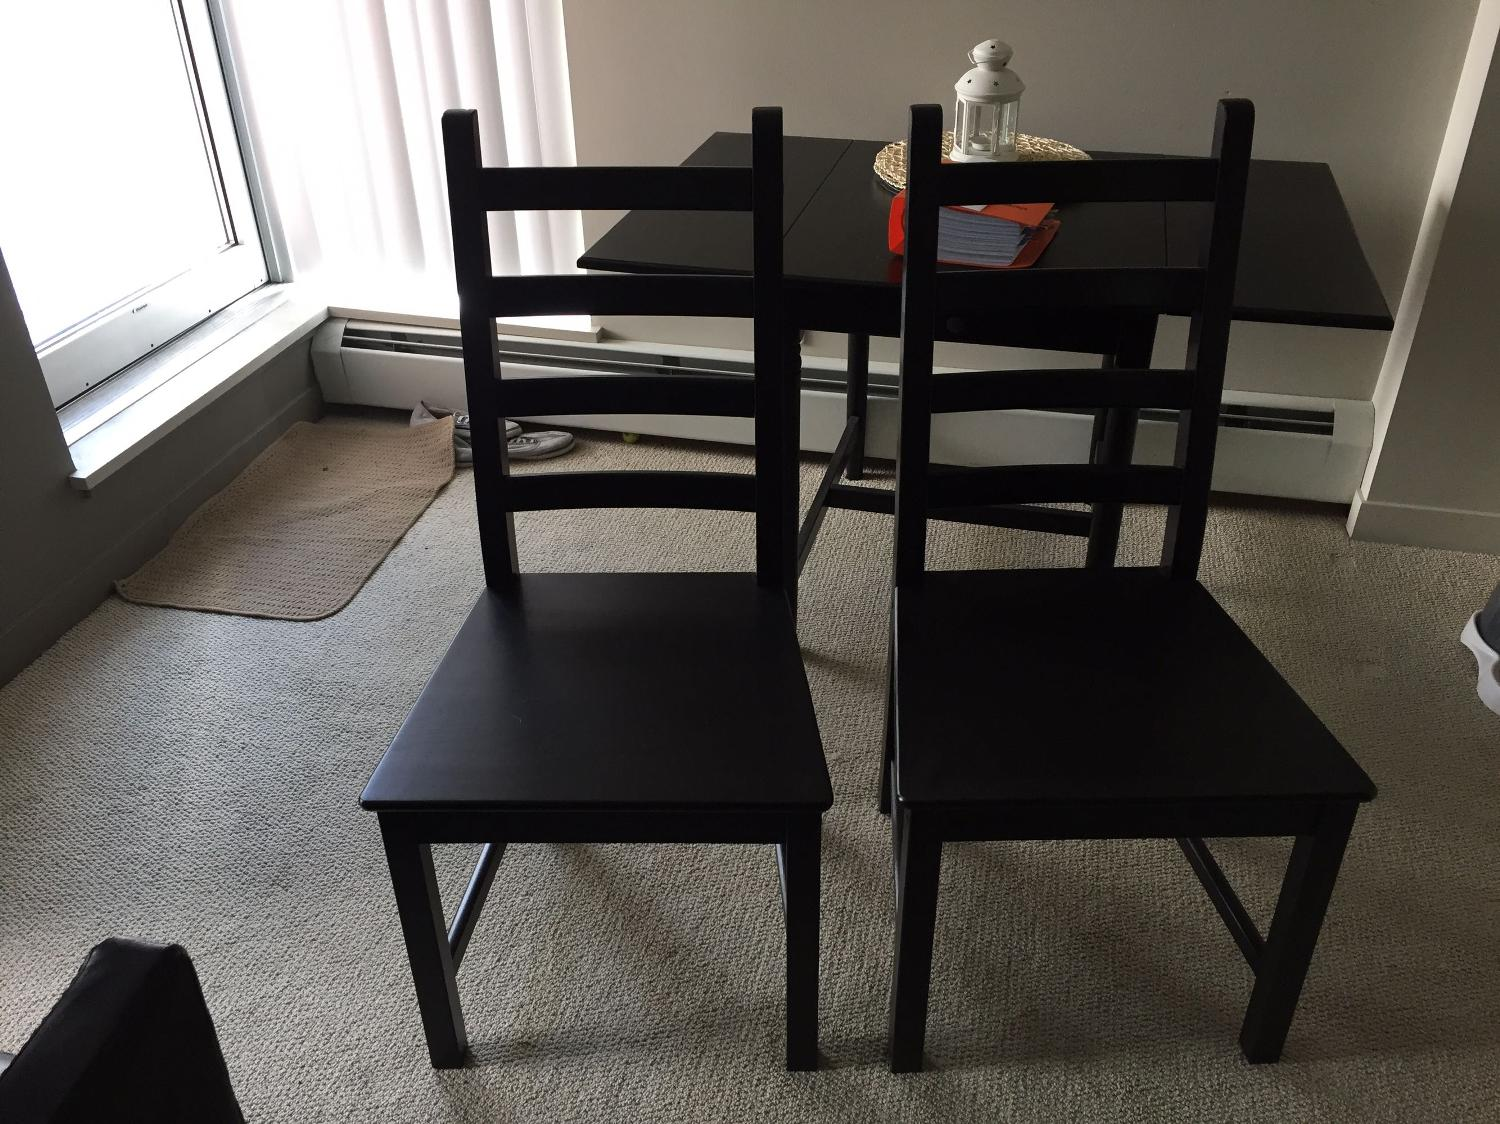 Find More Ikea Kaustby Chairs For Sale At Up To 90 Off